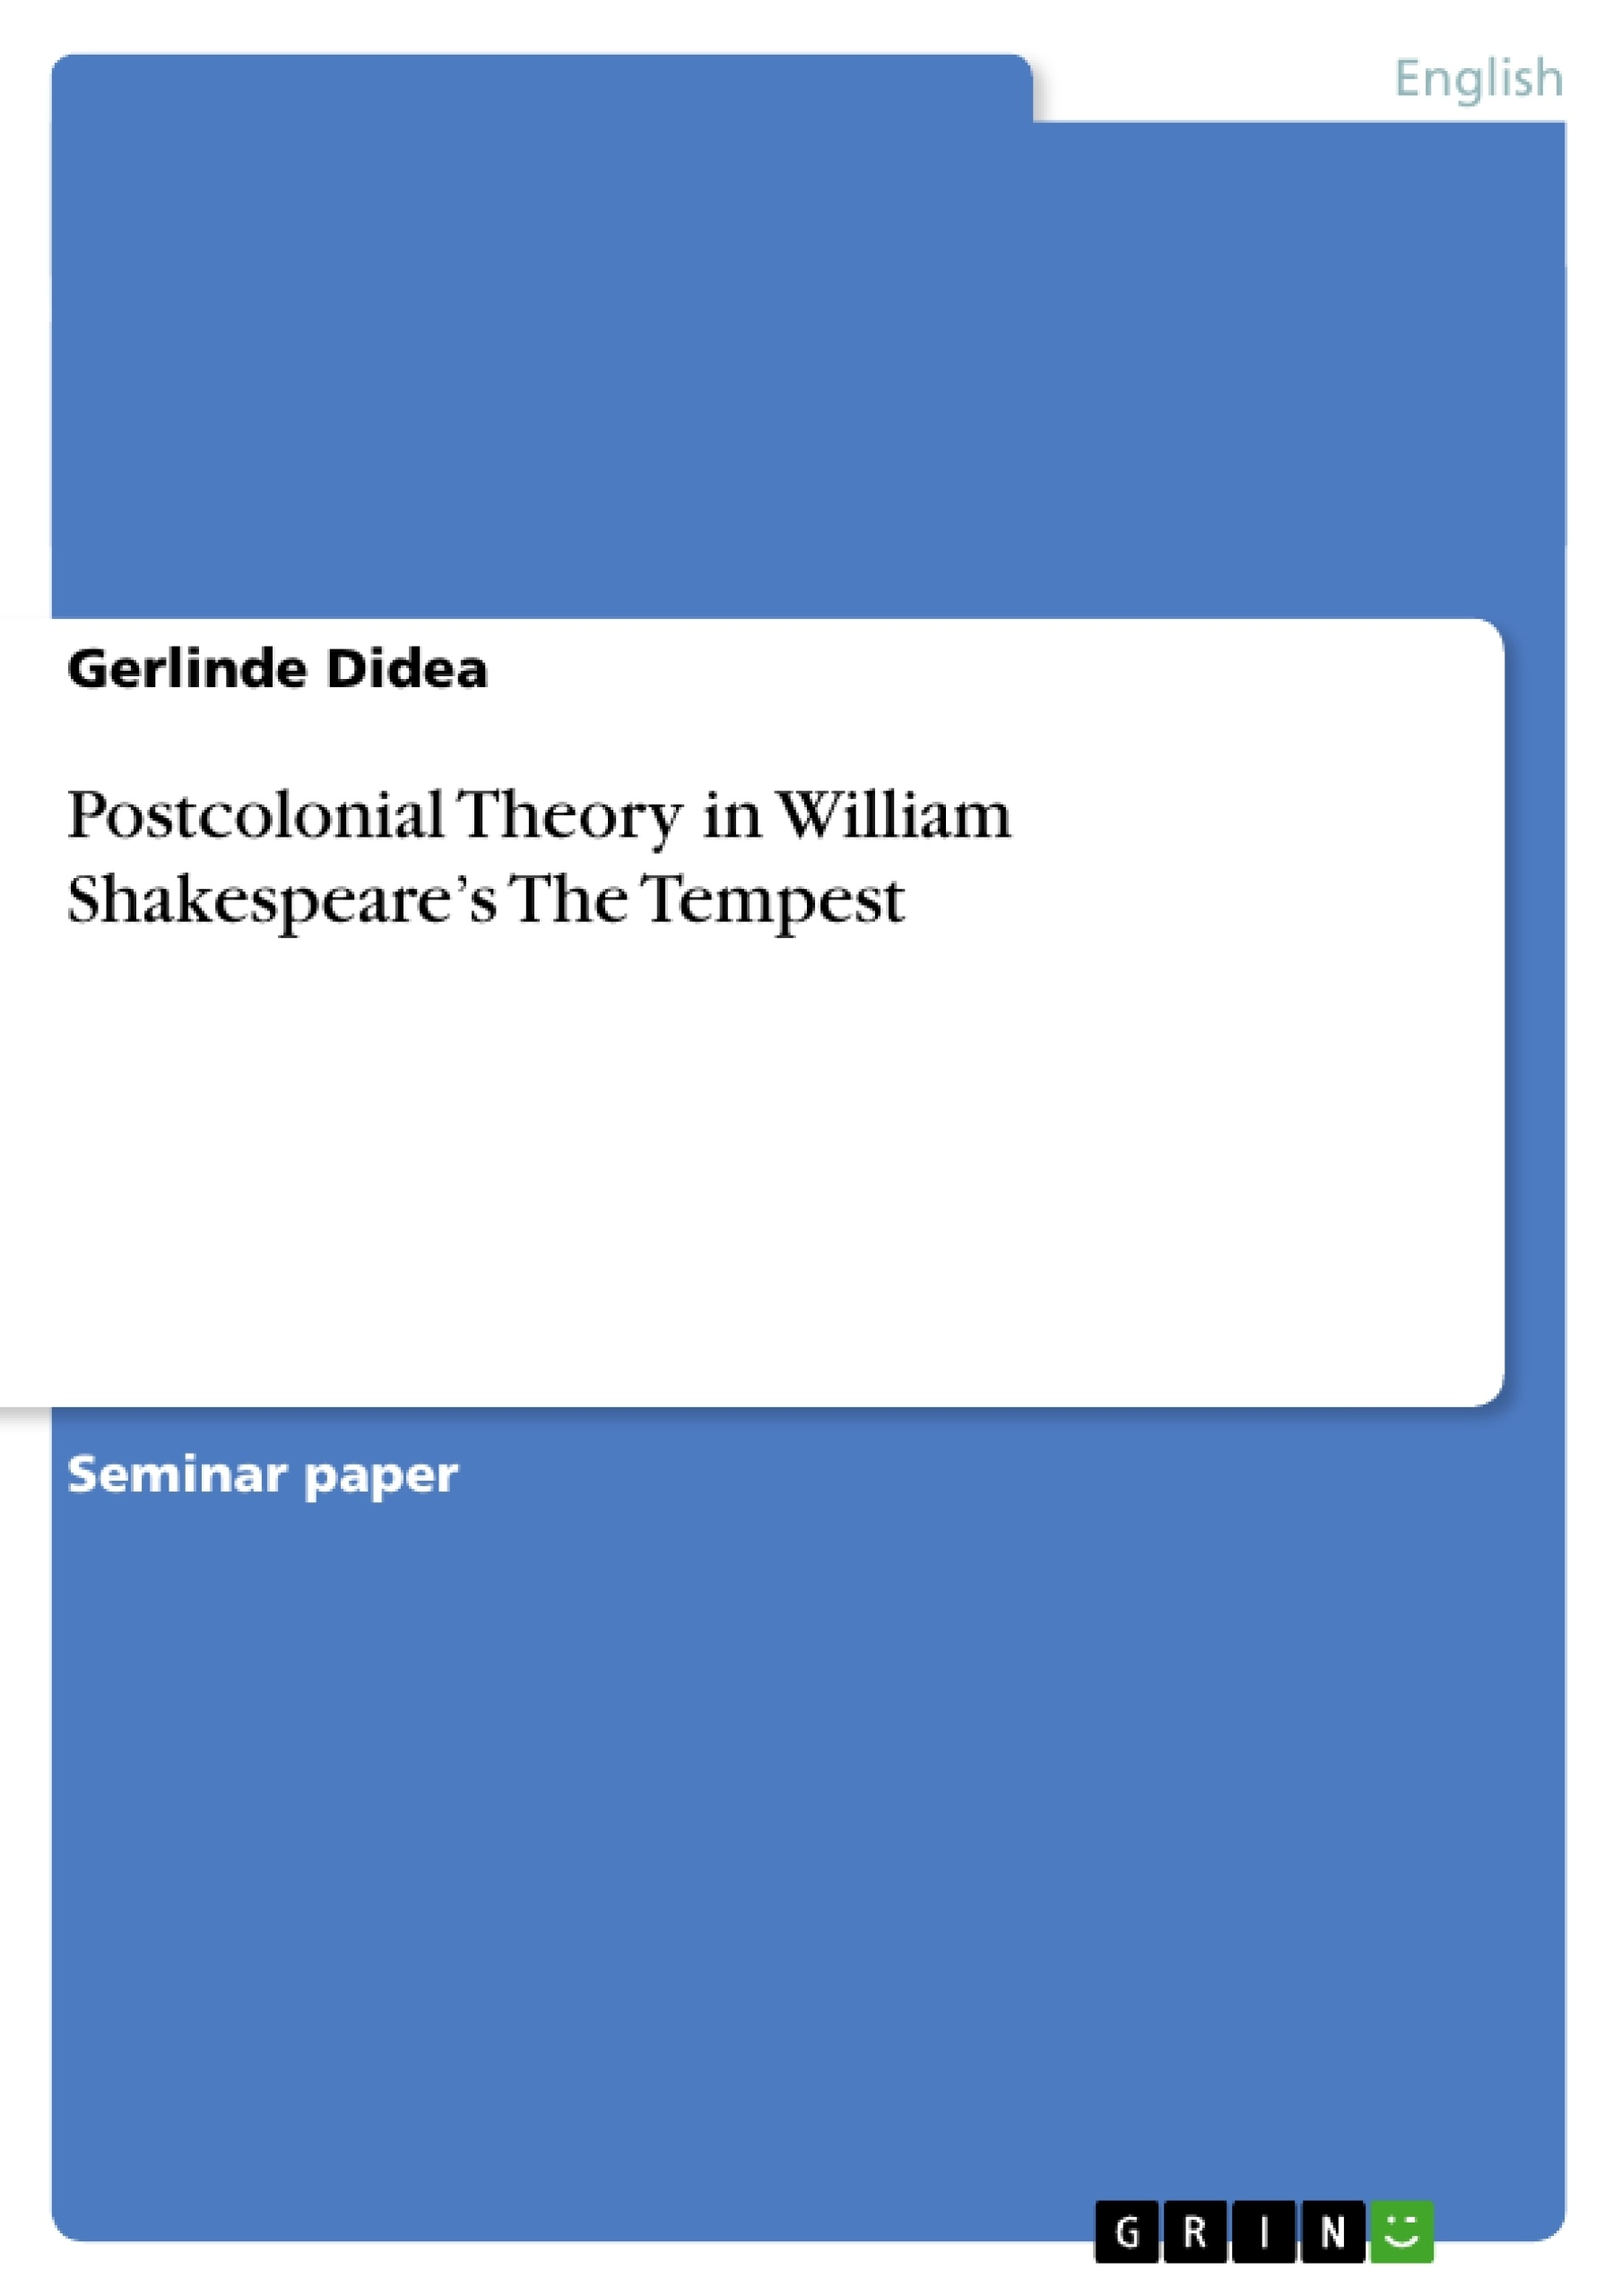 postcolonial theory in william shakespeare s the tempest publish postcolonial theory in william shakespeare s the tempest publish your master s thesis bachelor s thesis essay or term paper